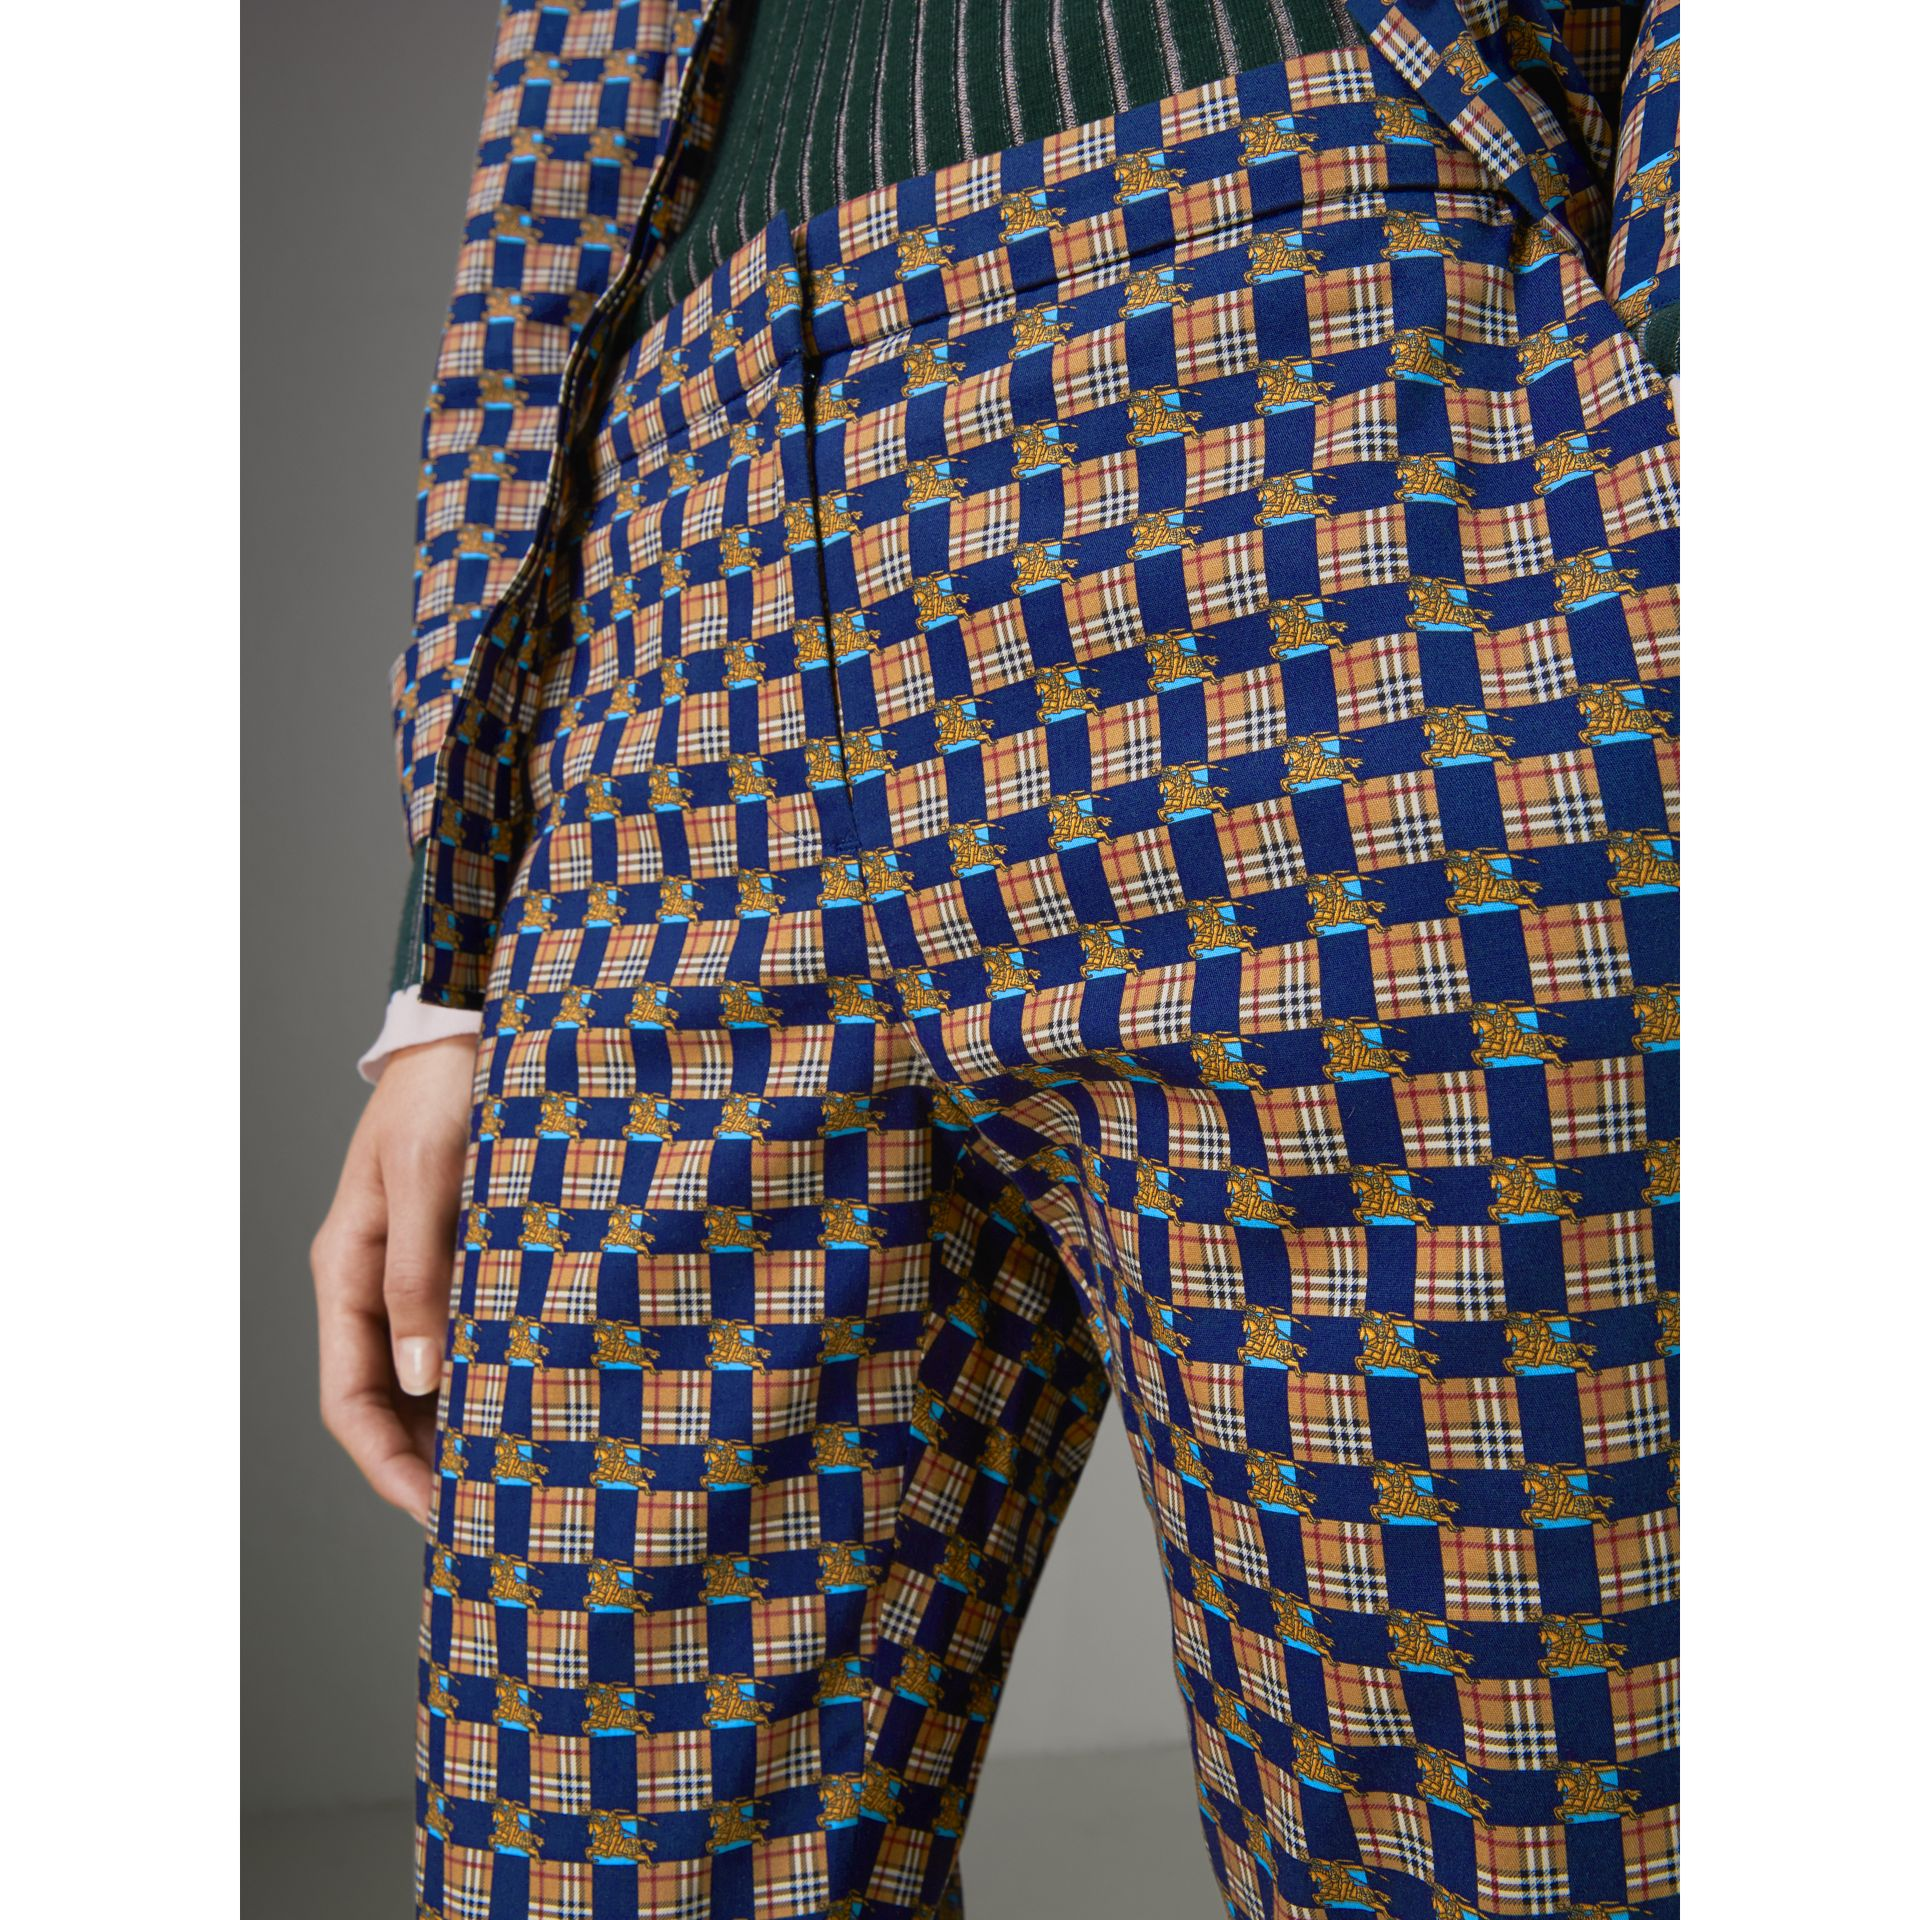 Tiled Archive Print Stretch Cotton Cigarette Trousers in Navy - Women | Burberry United States - gallery image 1